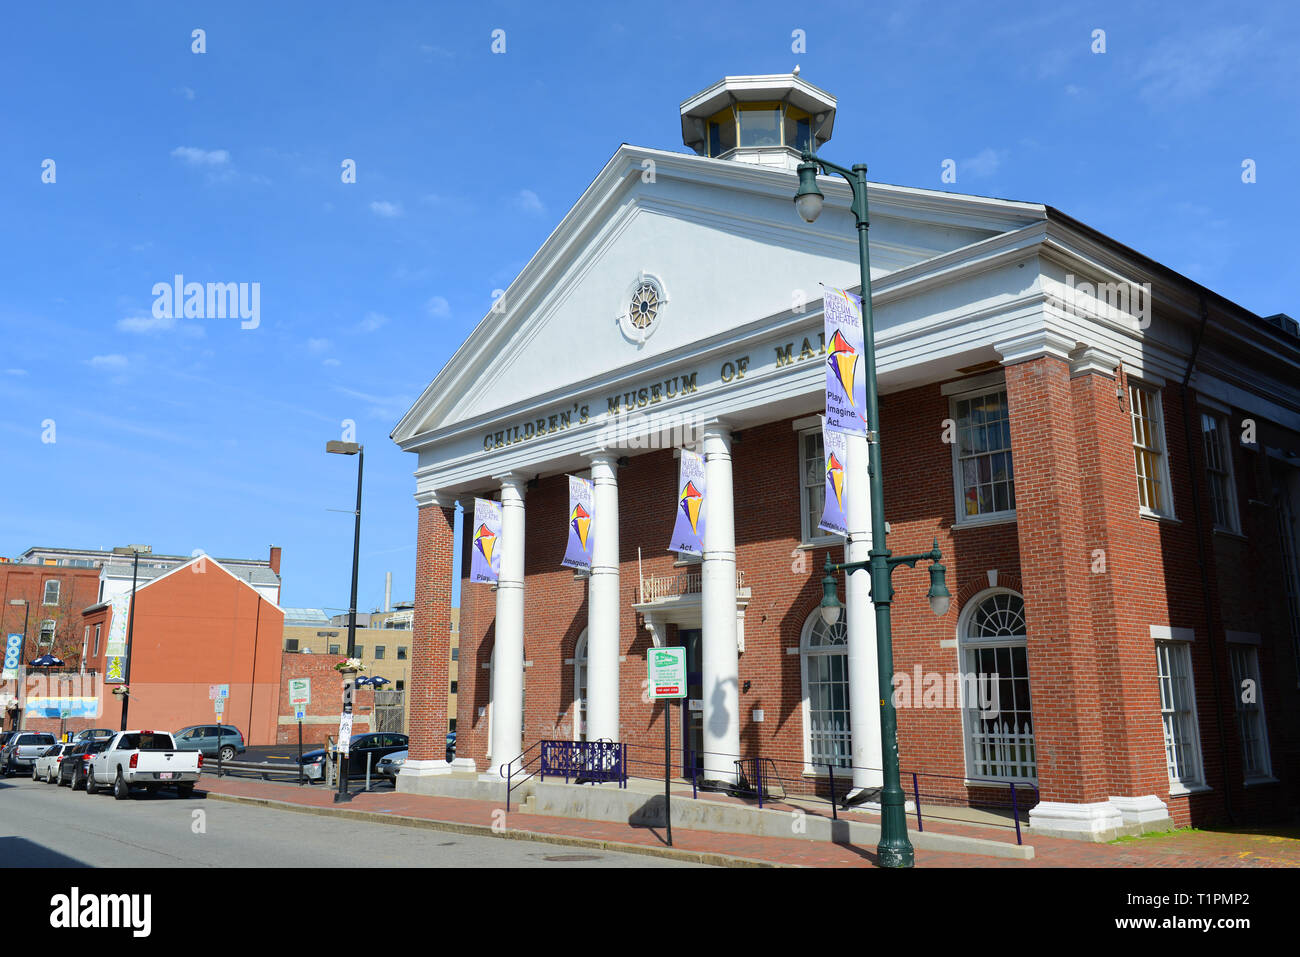 Portland Children's Museum of Maine at Arts District on Free Street in Portland, Maine, USA. Stock Photo